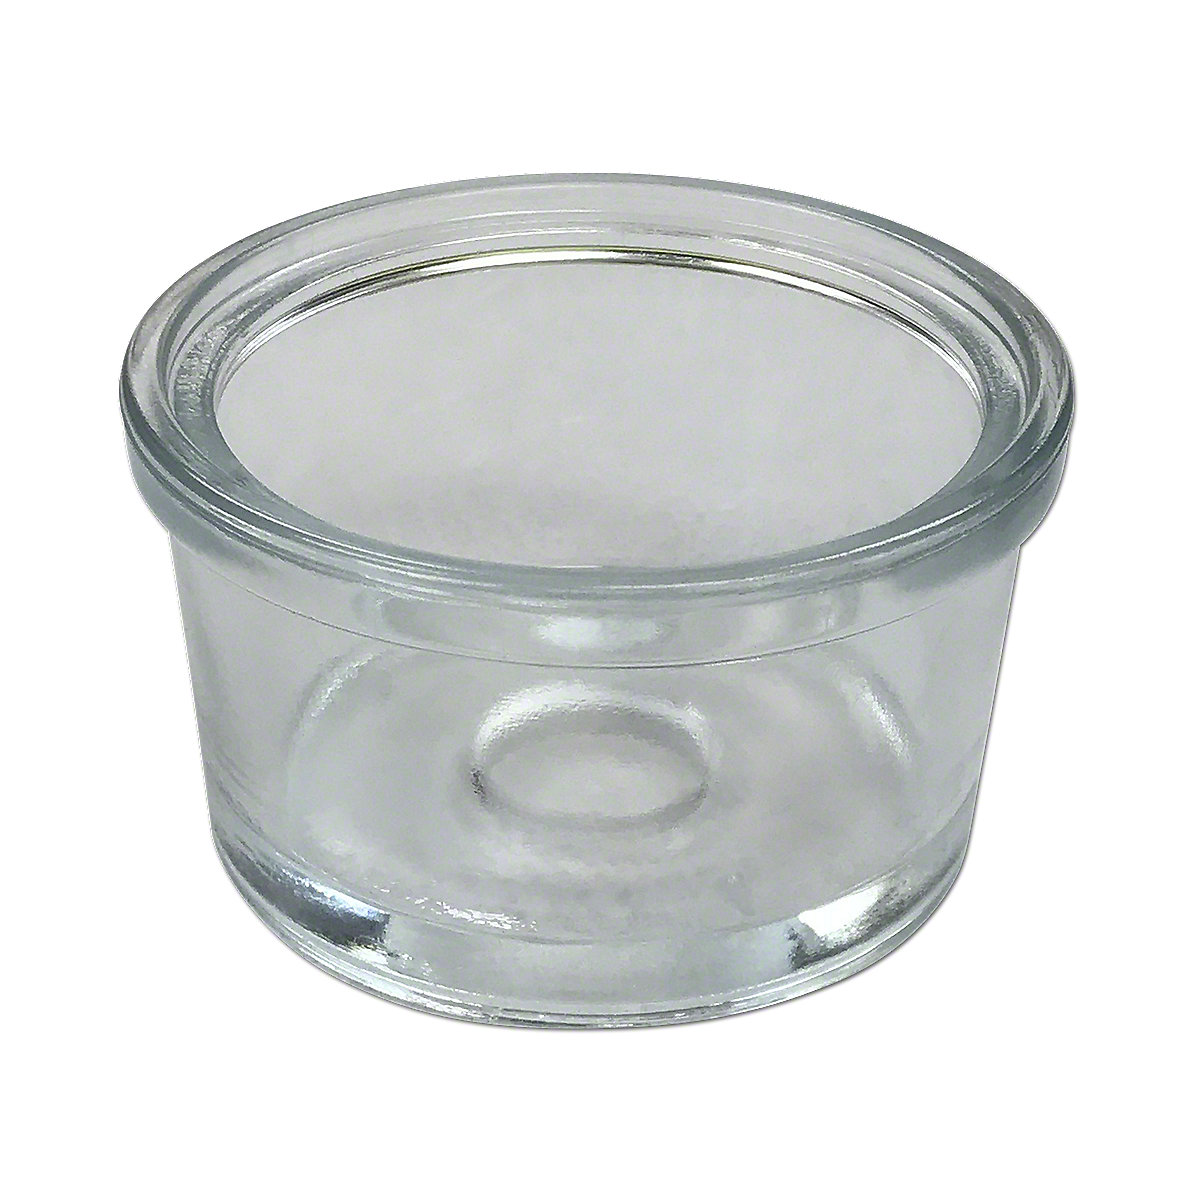 ABC3882 Fuel Filter Glass Bowl